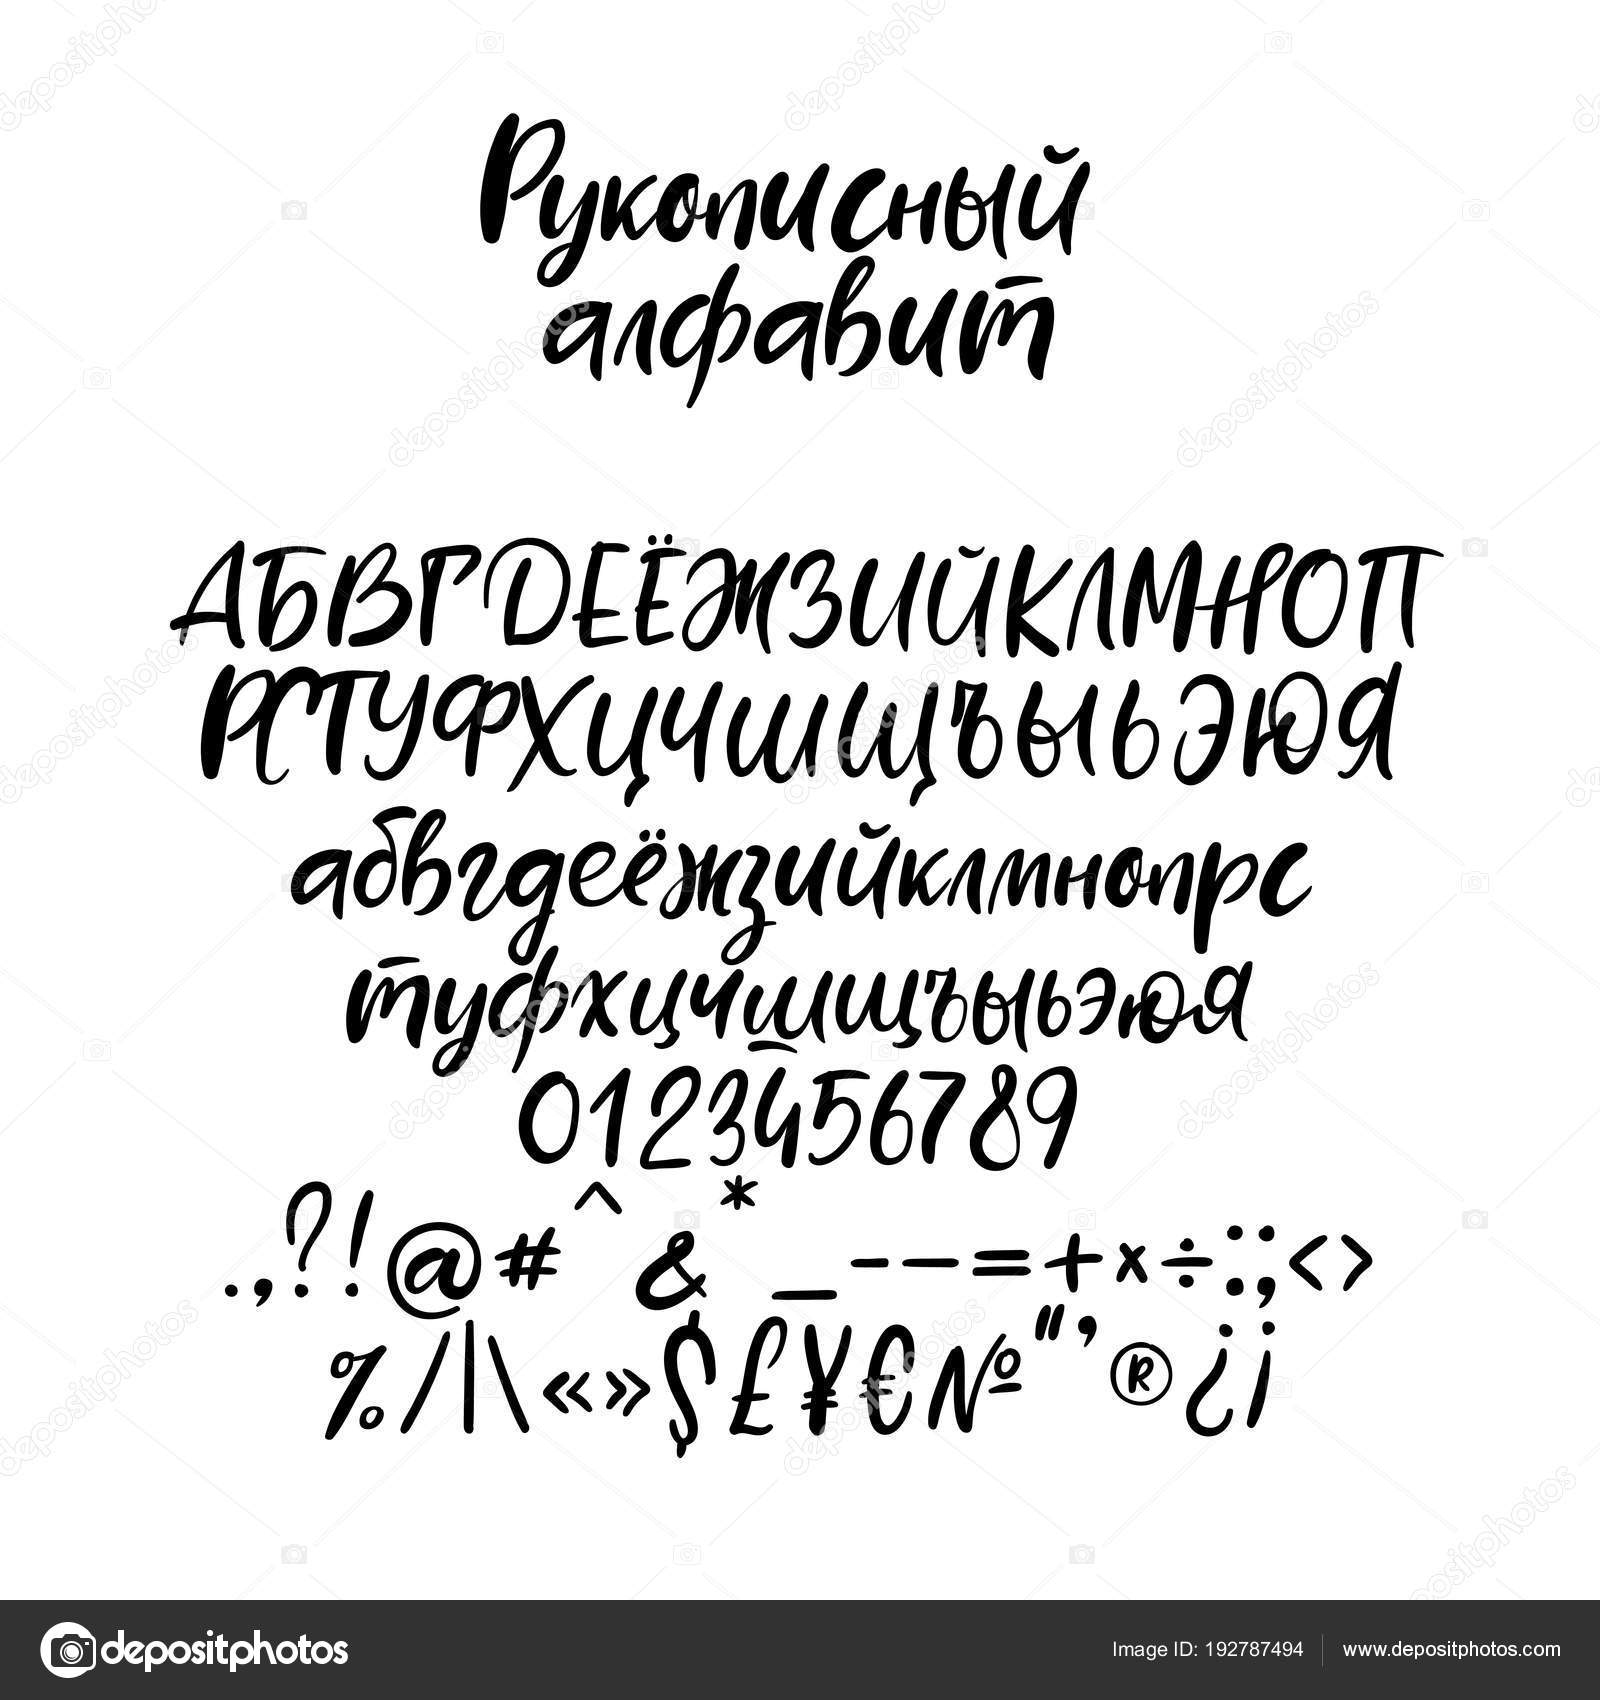 Cyrillic Alphabet Decorative Handwritten Brush Font Vector Letters Wedding Calligraphy ABC For